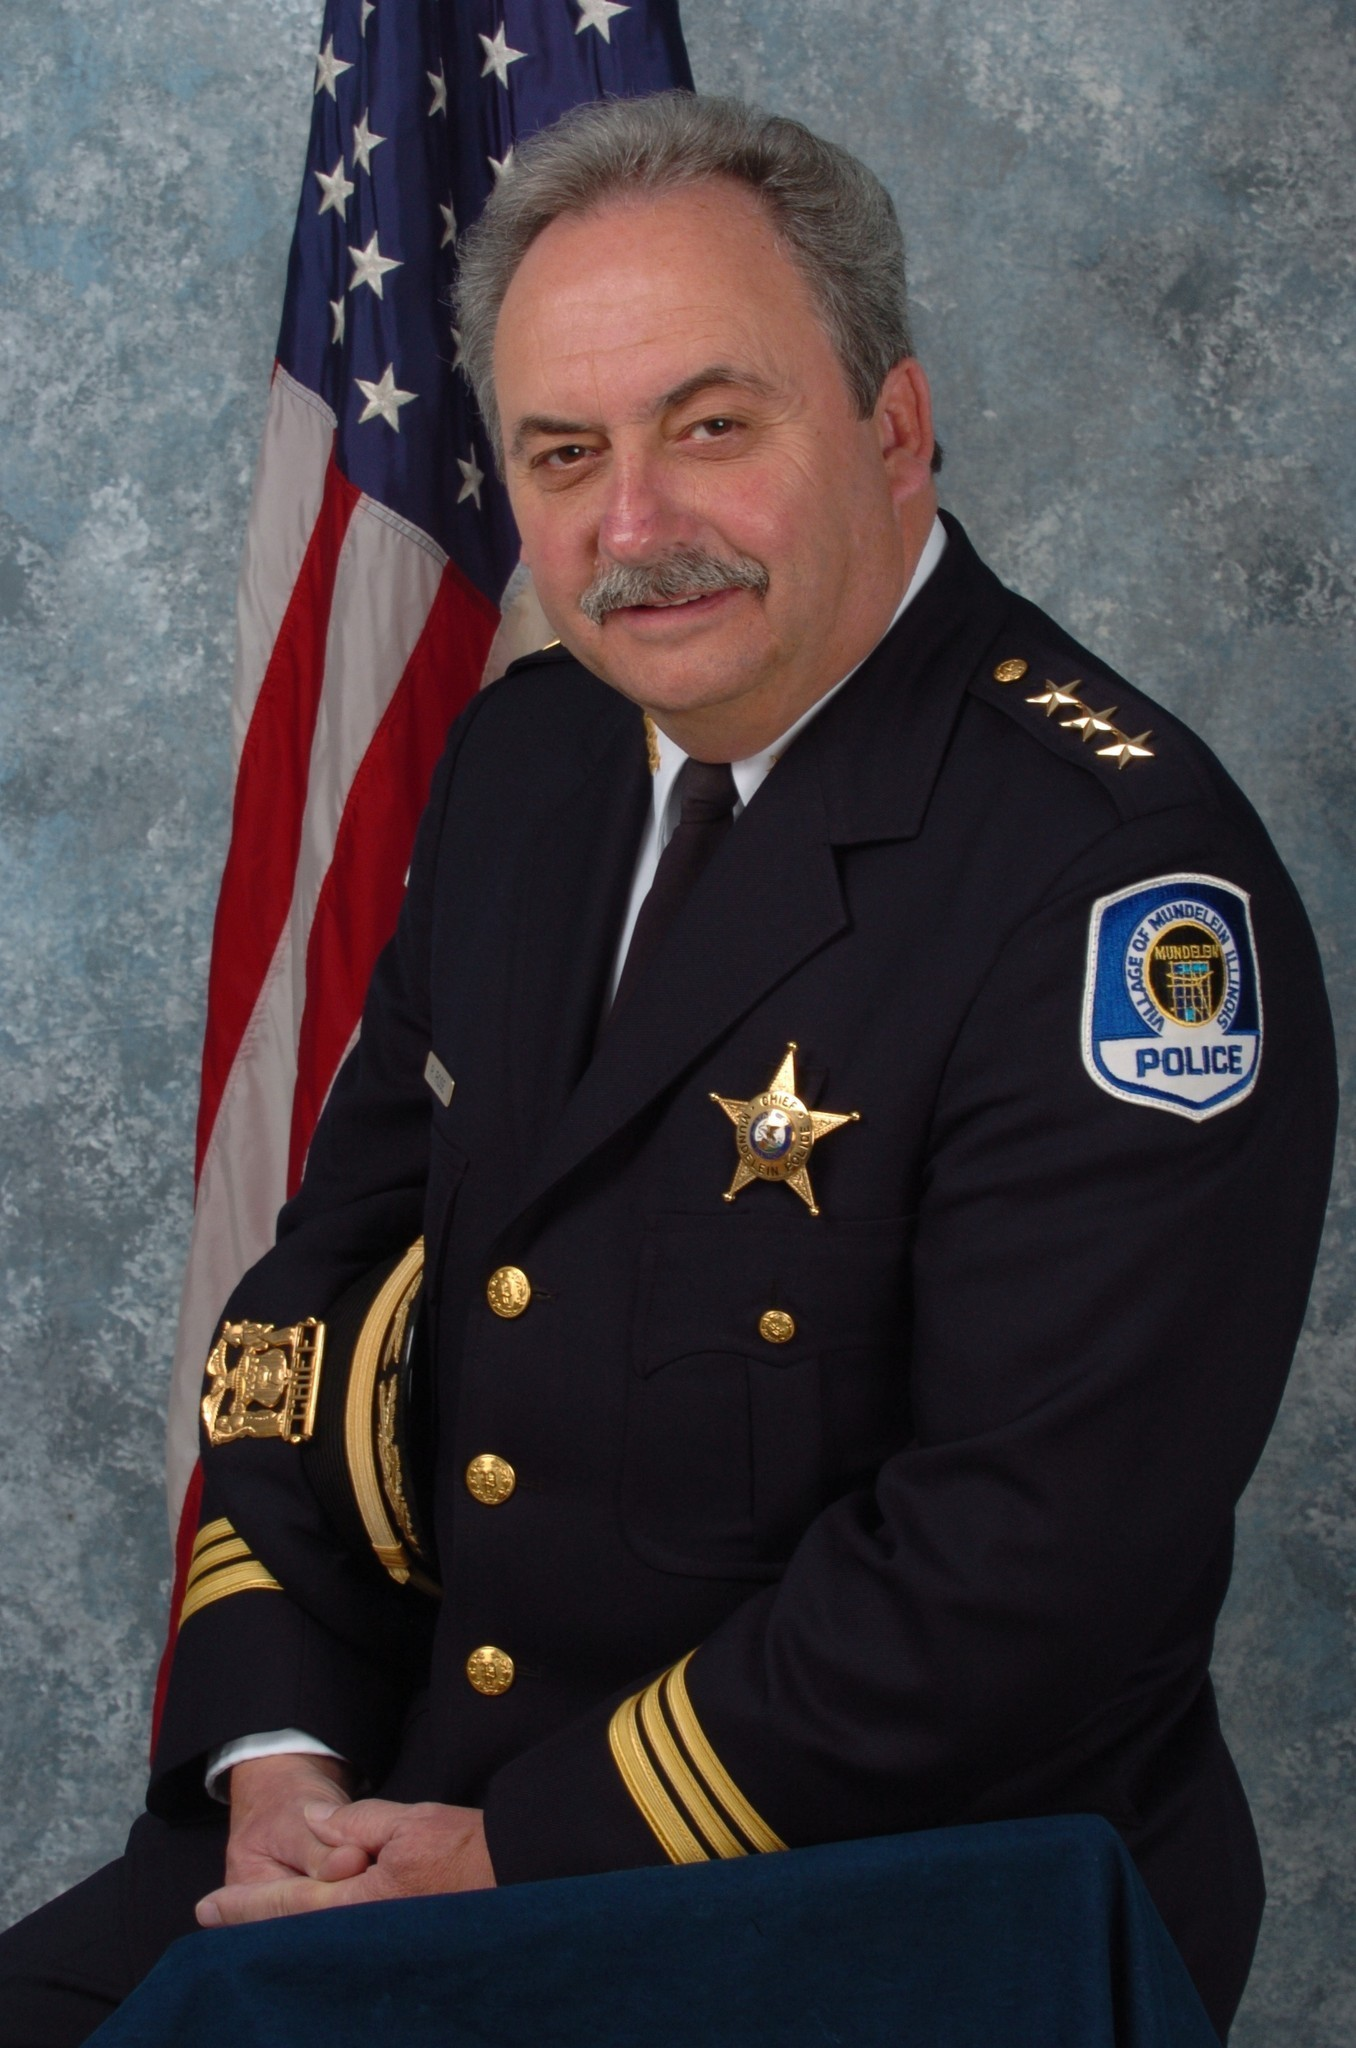 Lake County Undersheriff Critic Settle Defamation Suit Over Facebook Comments Lake County